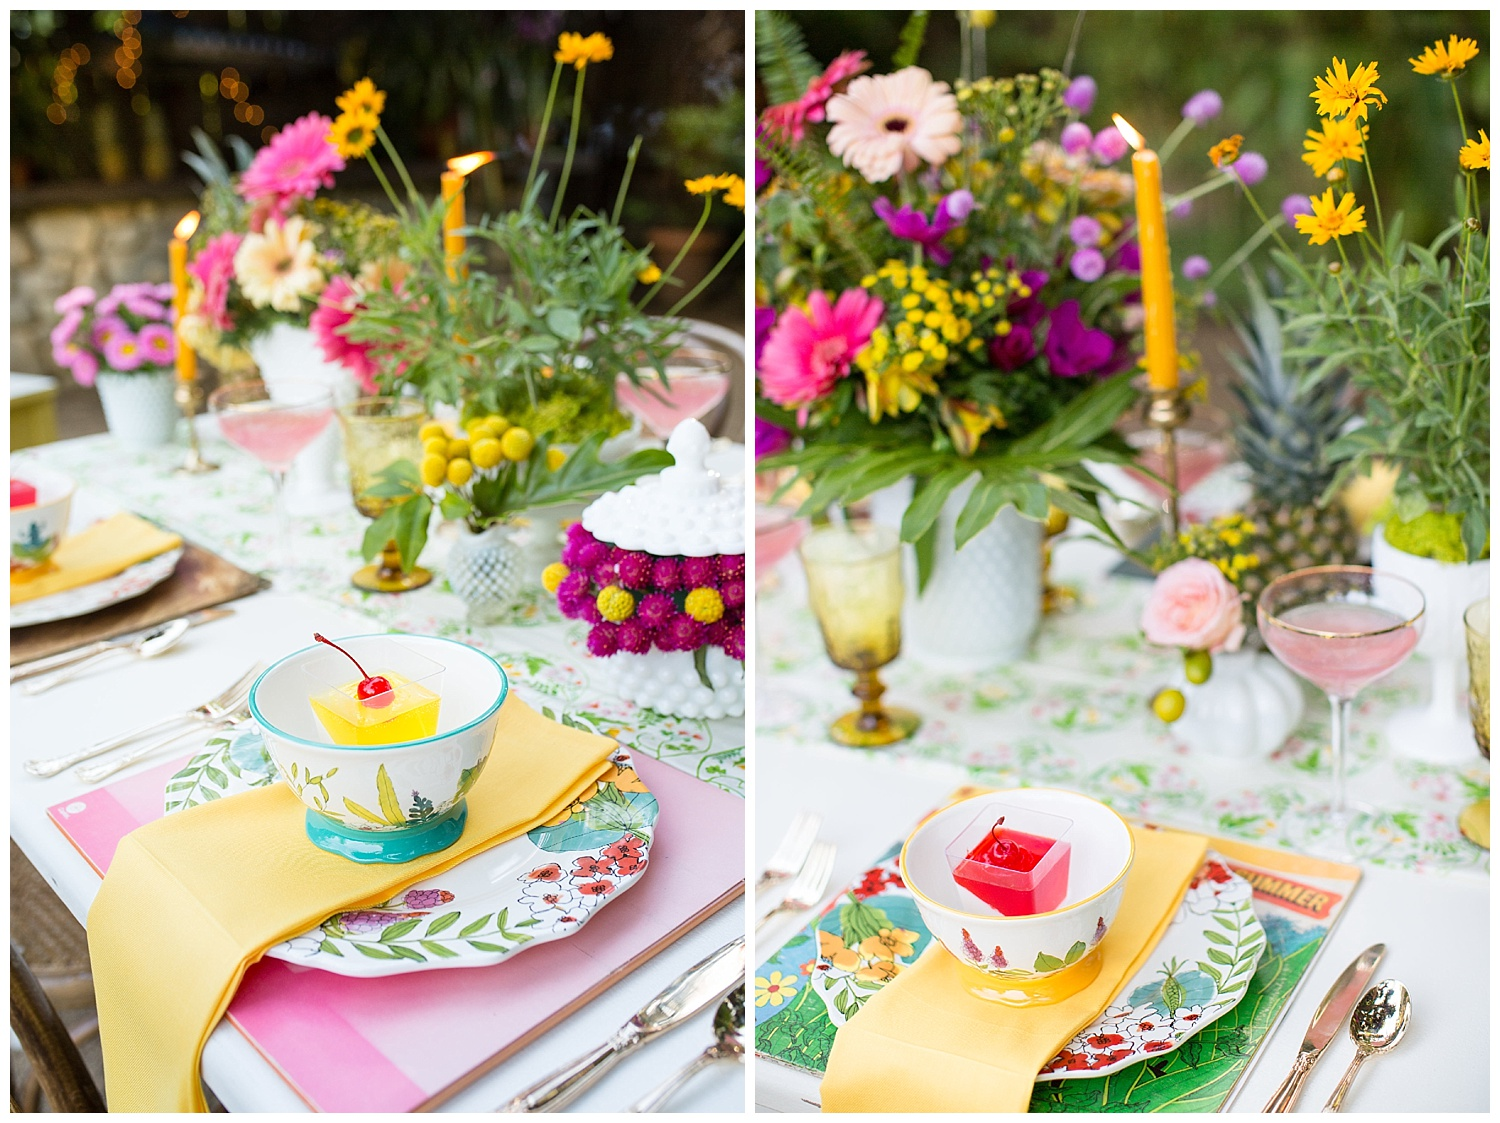 Teacup-dessert-cups-colorful-table.jpg